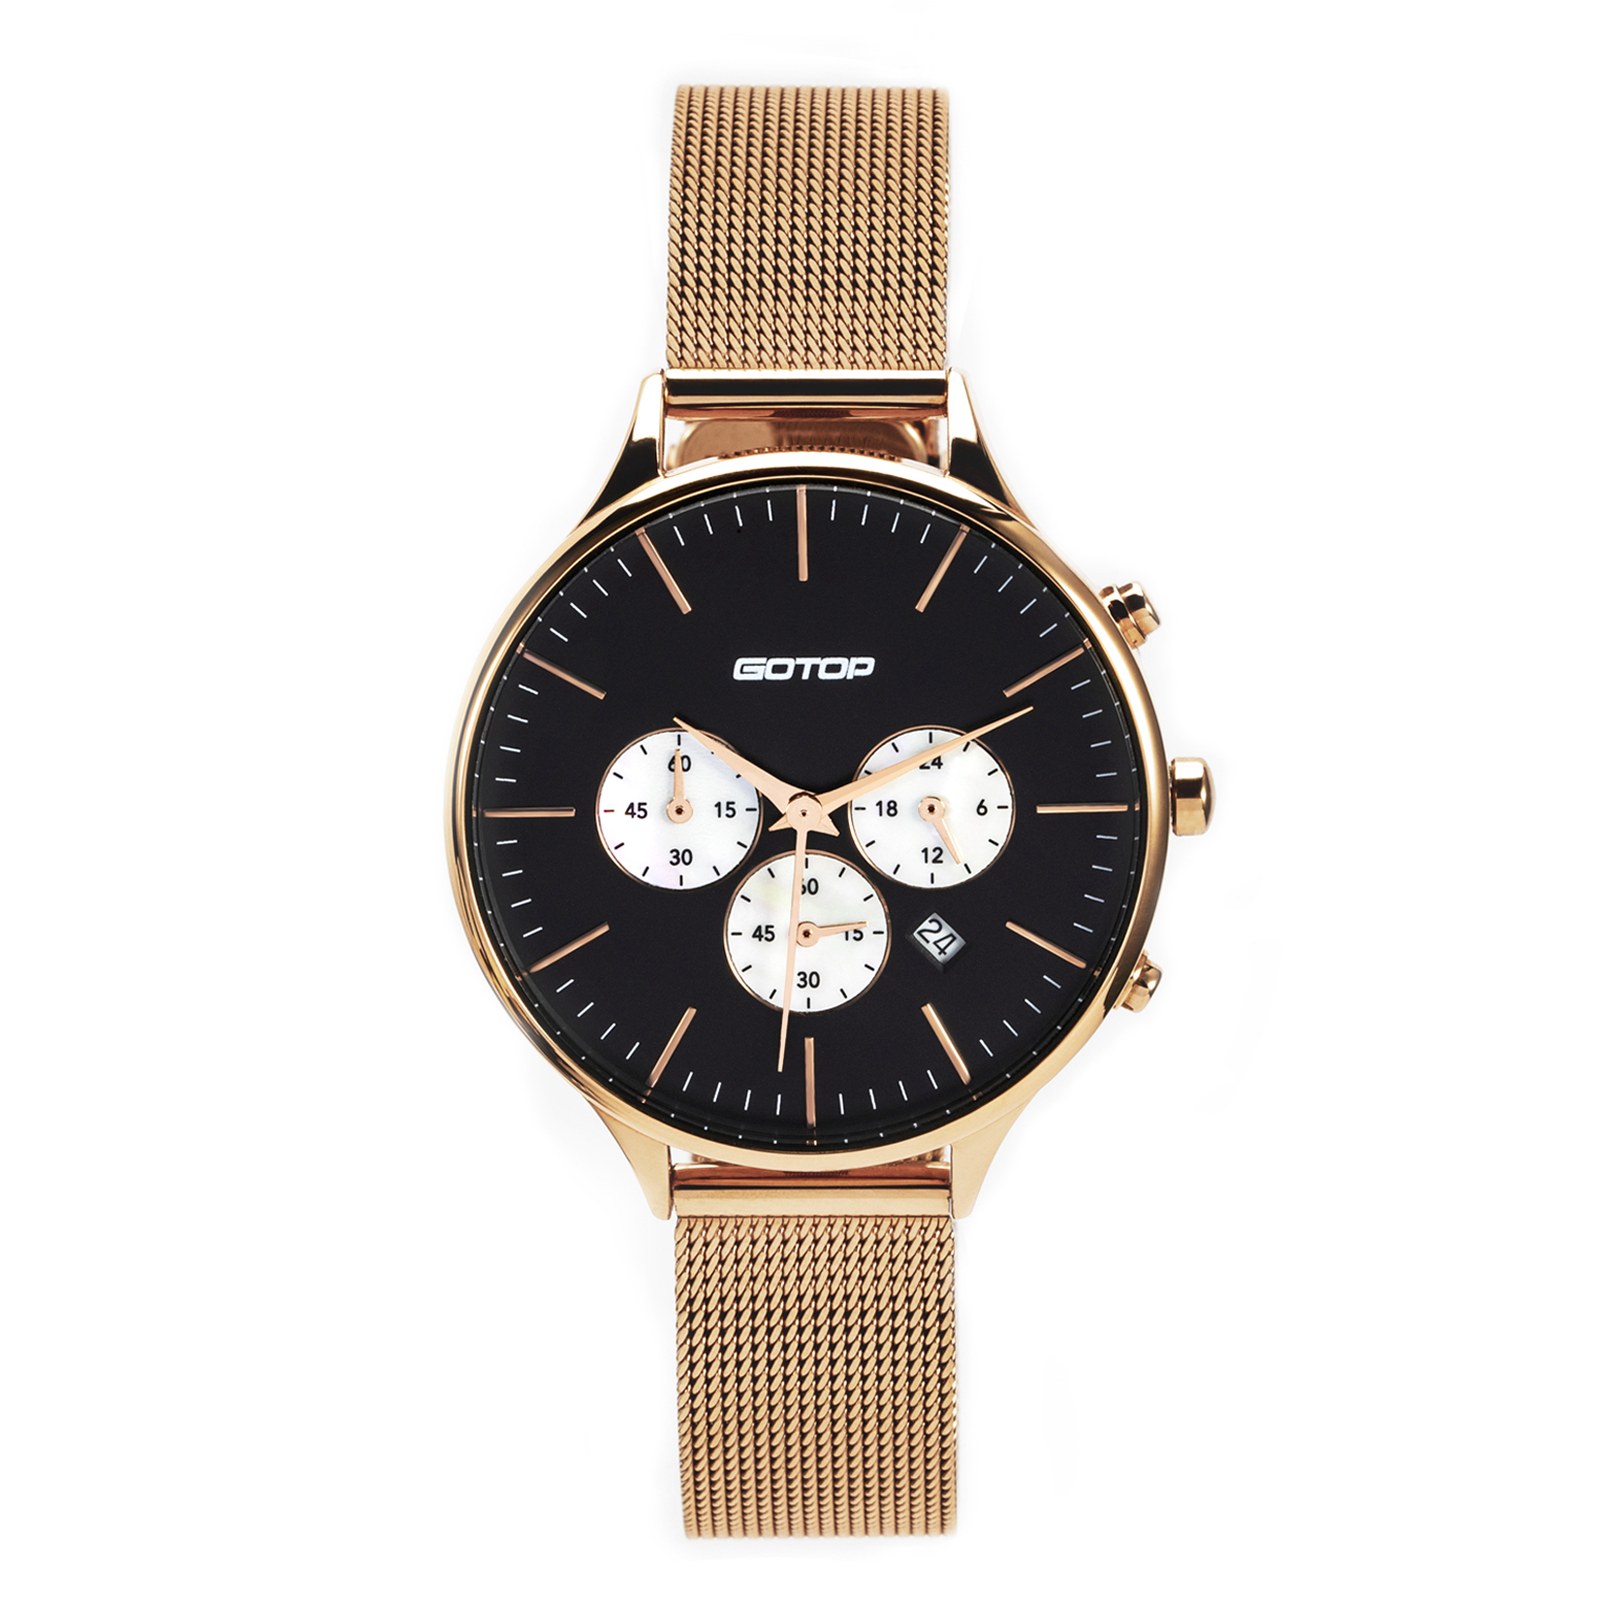 SS356-02 CHRONOGRAPH FUNCTION & CHARMING DESIGN LADIES WATCH